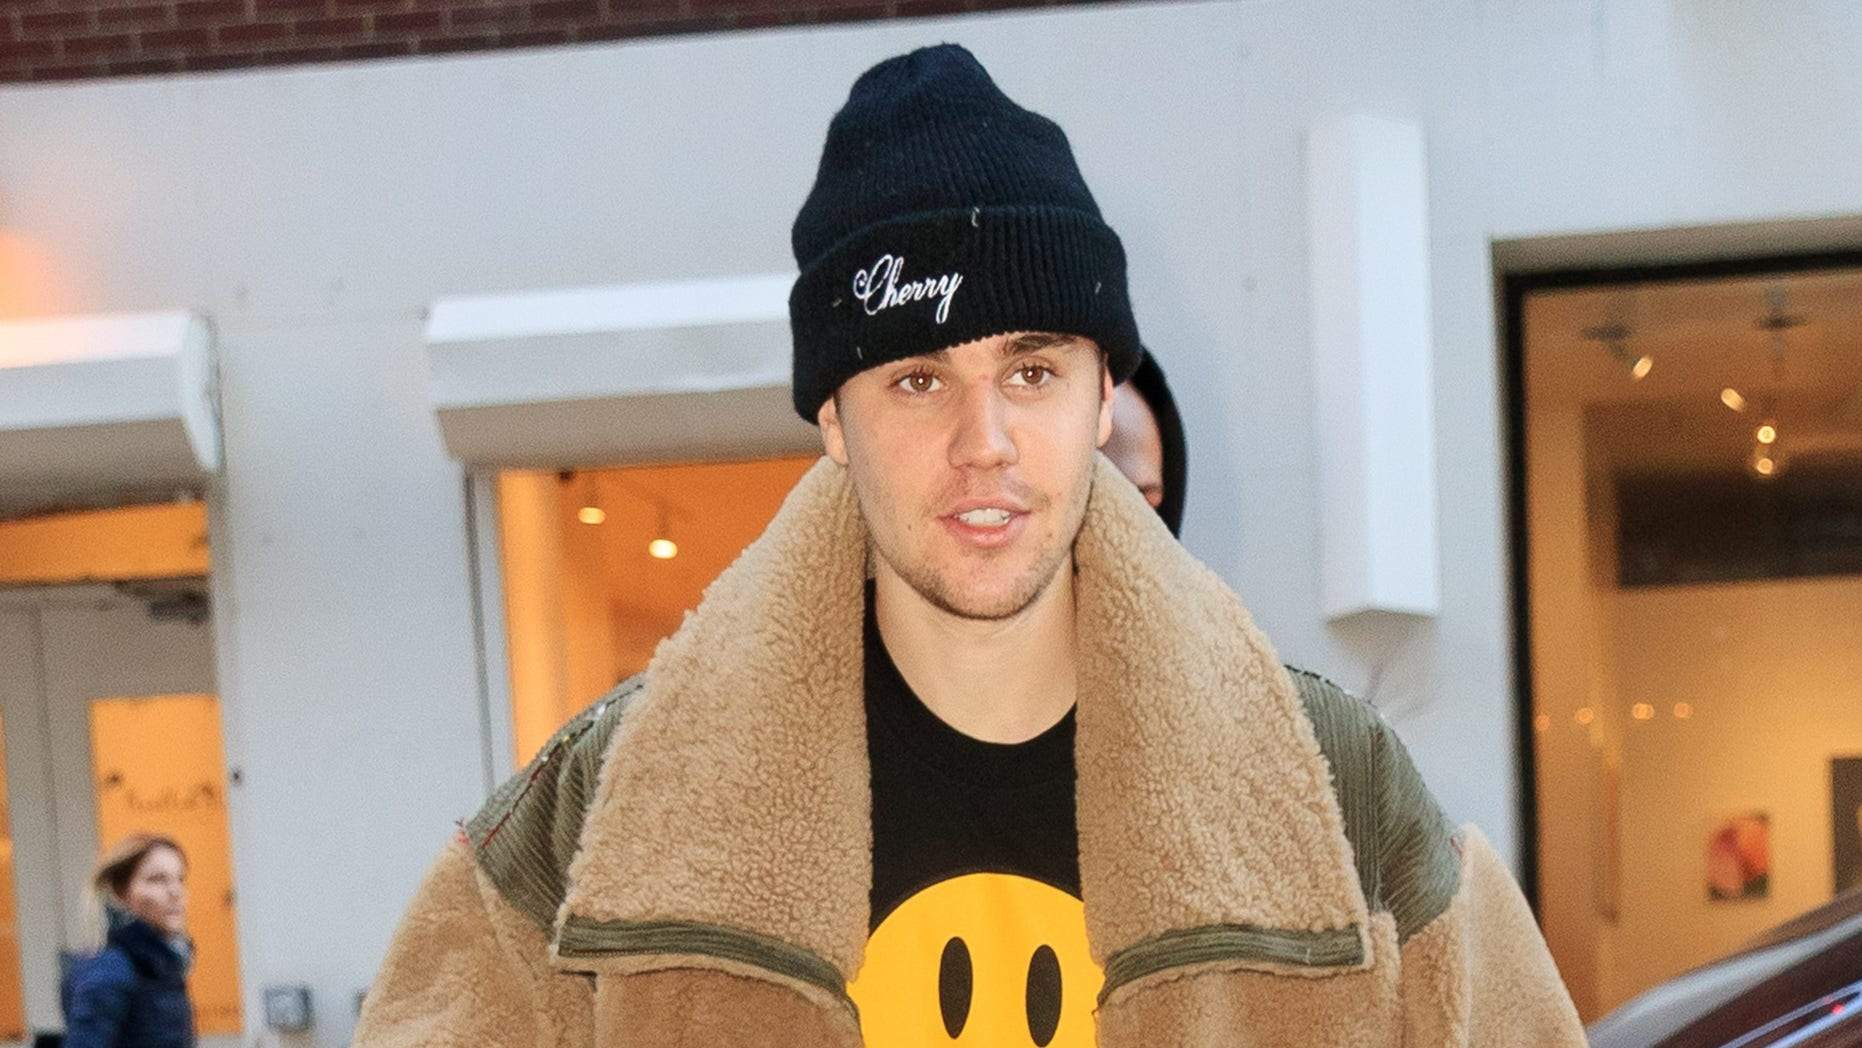 Justin Bieber announced on Monday that he is temporarily stepping away from music to focus on his mental health.